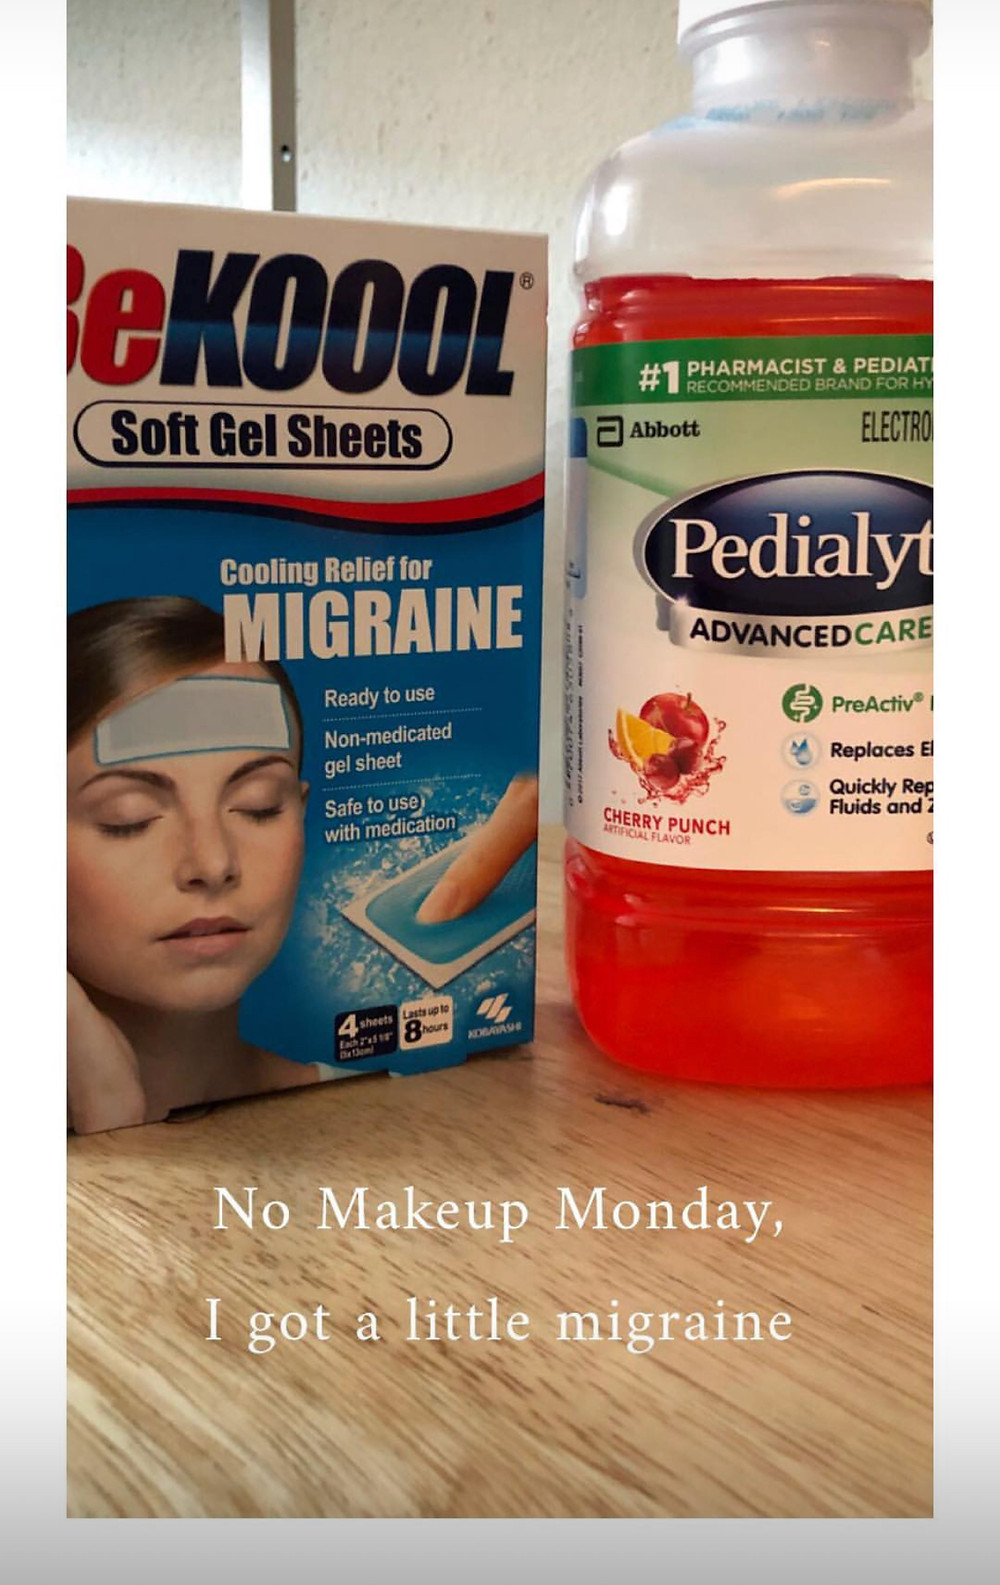 BeKool Migraine gel patches and pedialyte